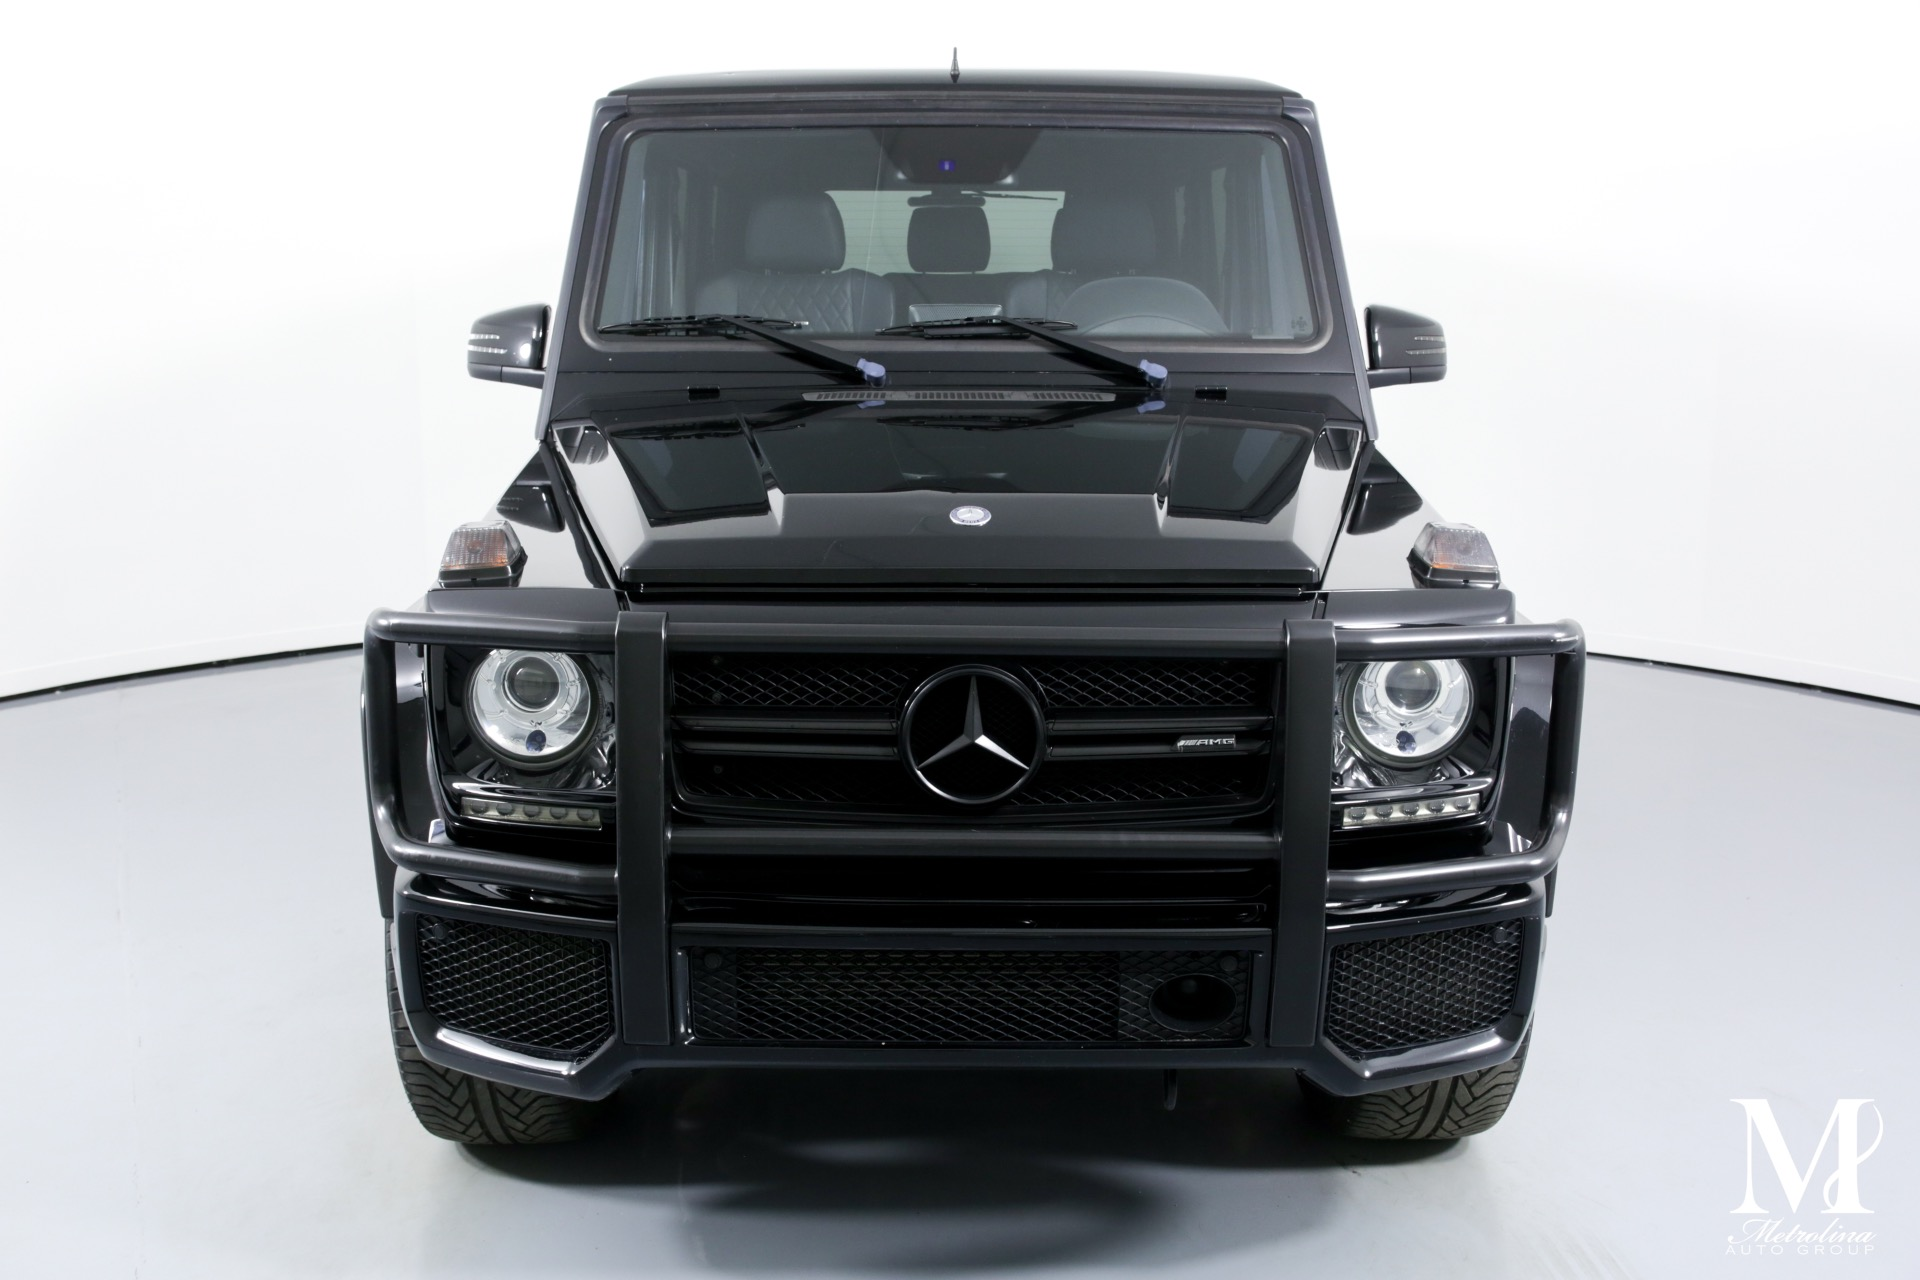 Used 2015 Mercedes-Benz G-Class G 63 AMG for sale $84,996 at Metrolina Auto Group in Charlotte NC 28217 - 3